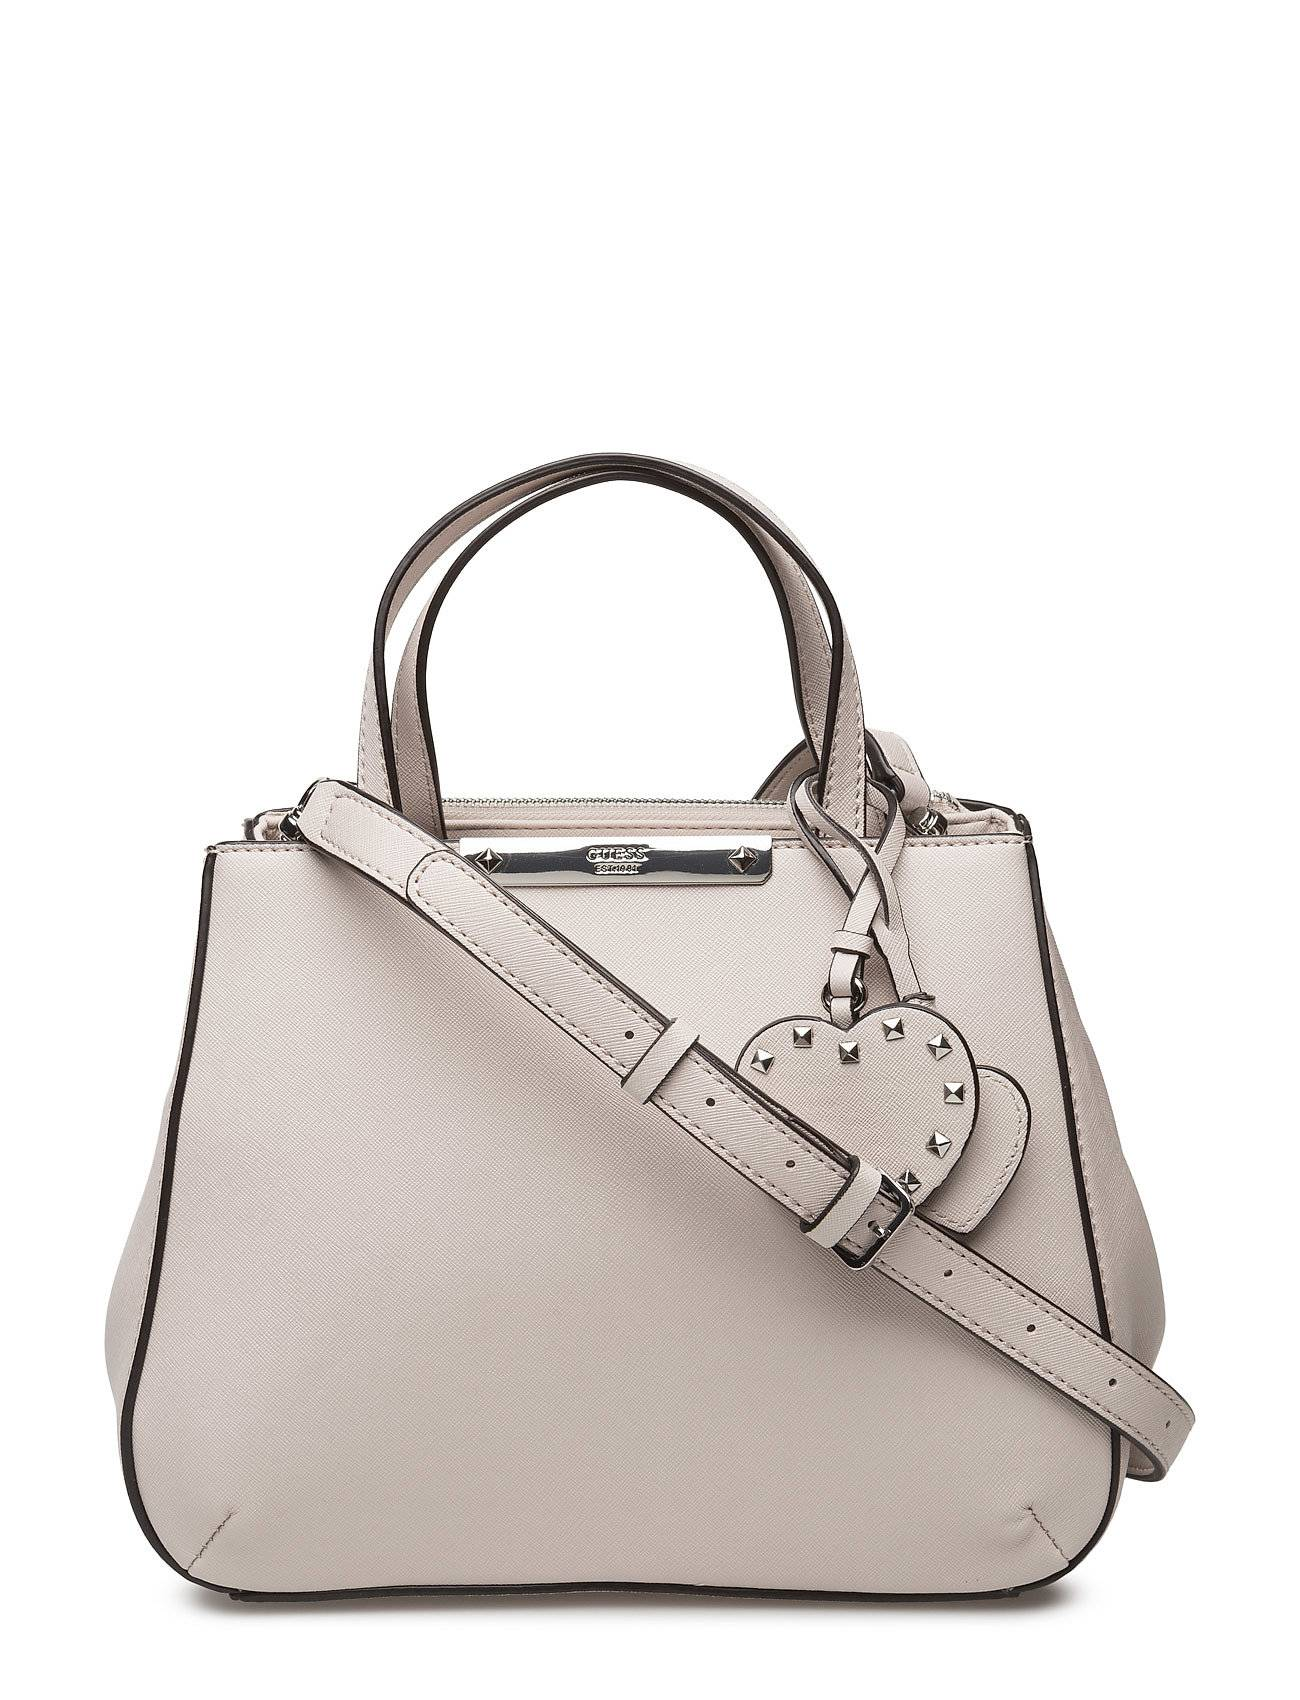 GUESS Britta Small Society Satchel